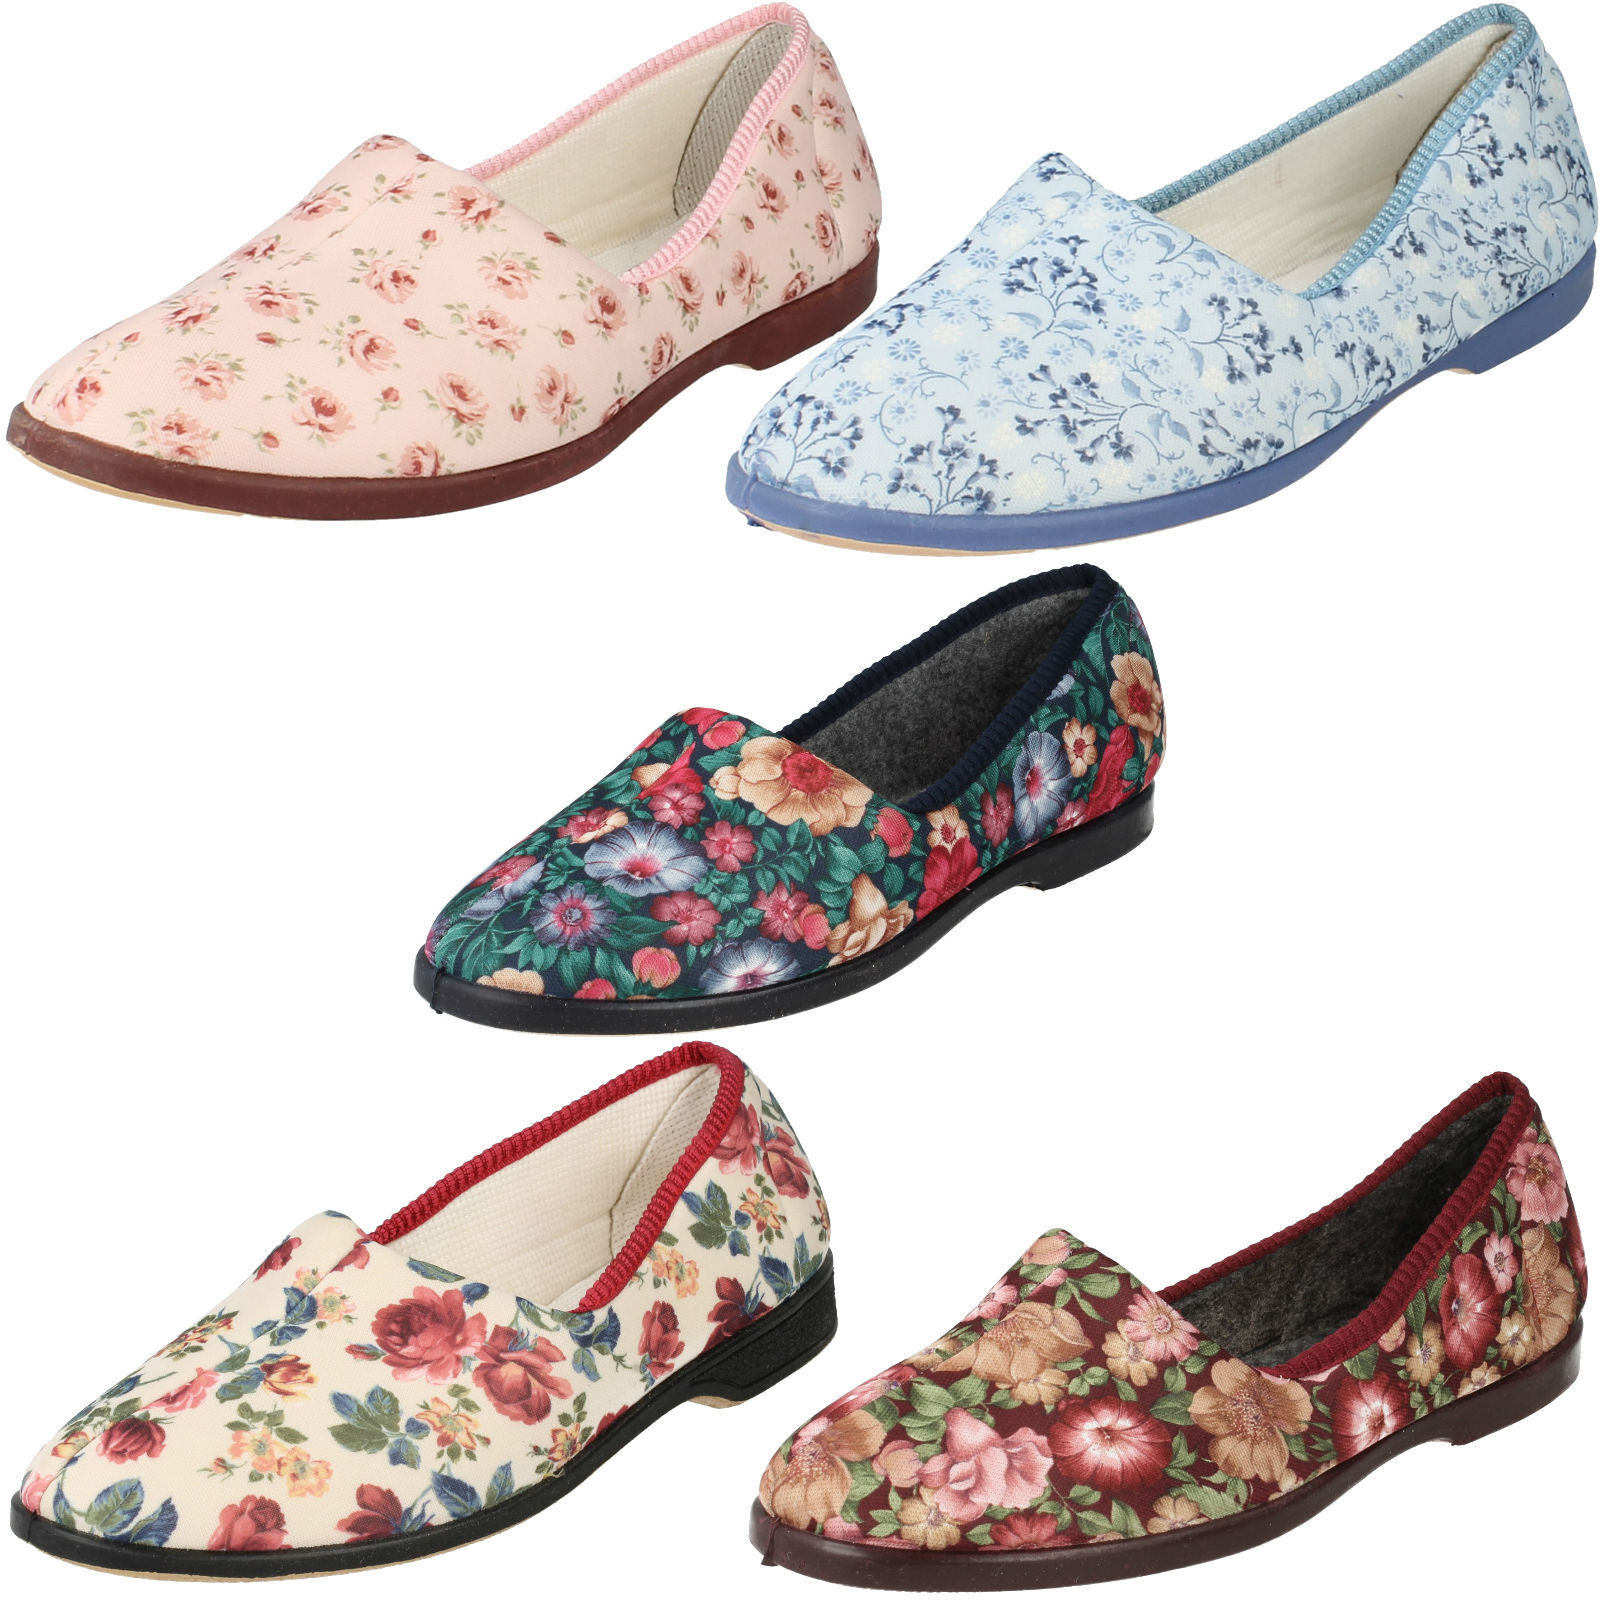 LADIES SOFT LADYLOVE FLORAL SLIP ON SOFT LADIES ROUND TOE SHOES FLEXIBLE WARM SLIPPERS bae87a